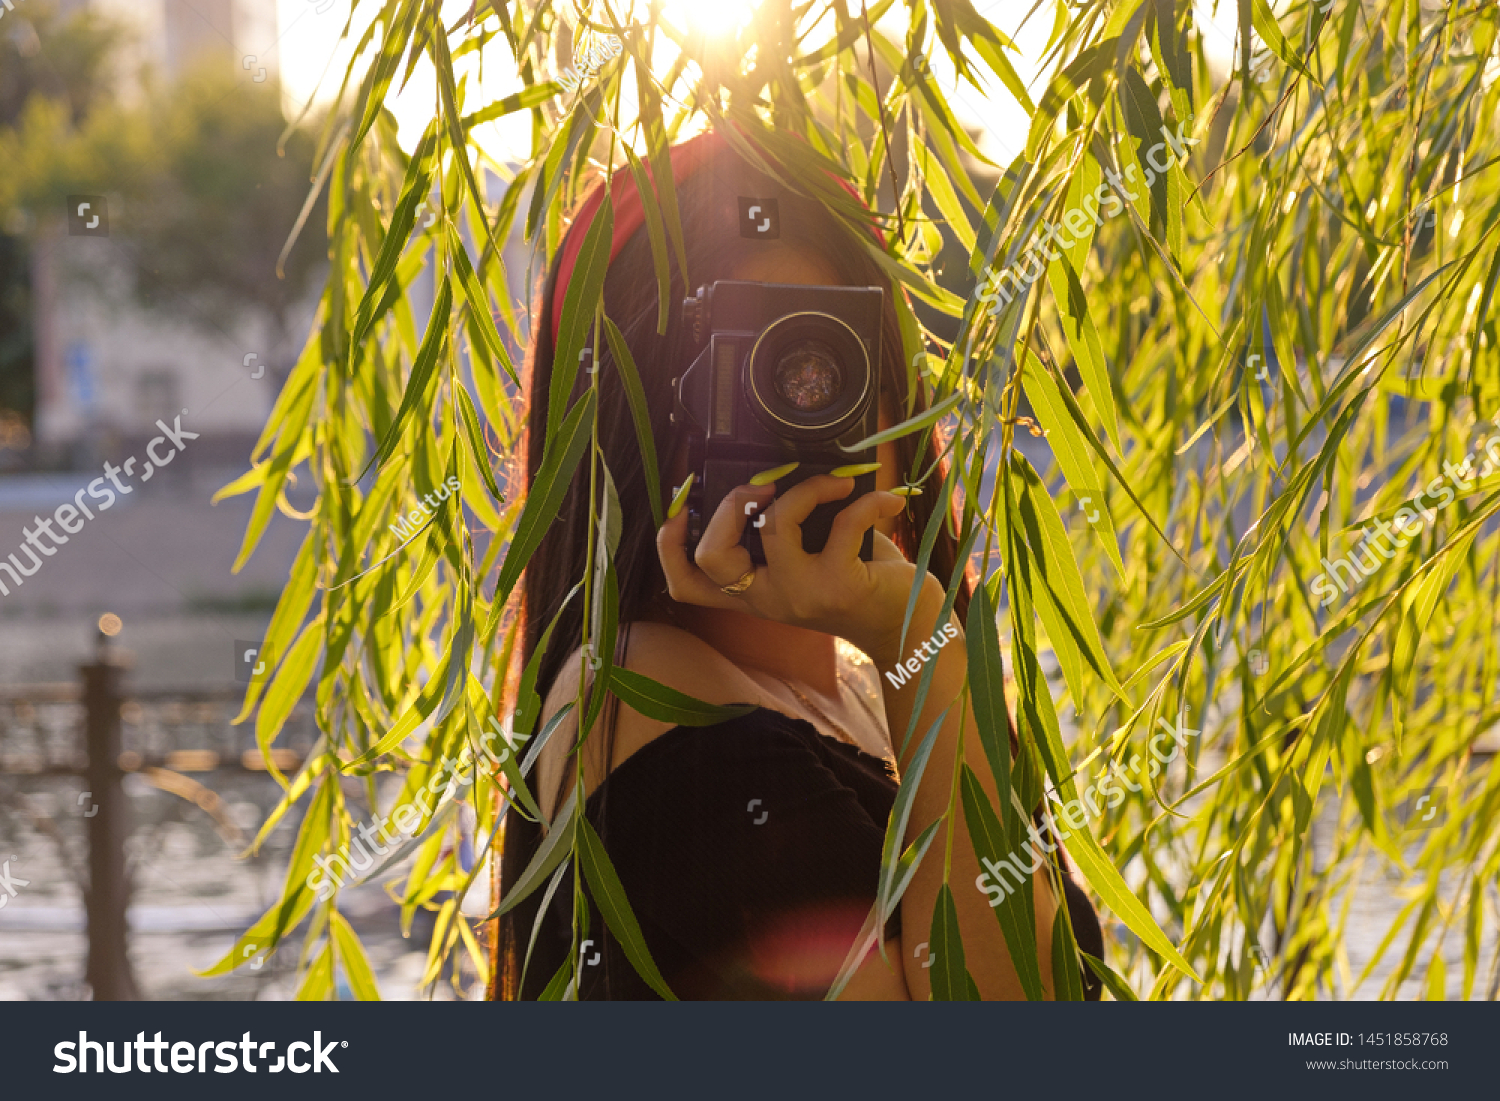 Asian Girl with camera in the park in sunset time. Brunette girl with film camera in the vintage colored image in front of willow branches